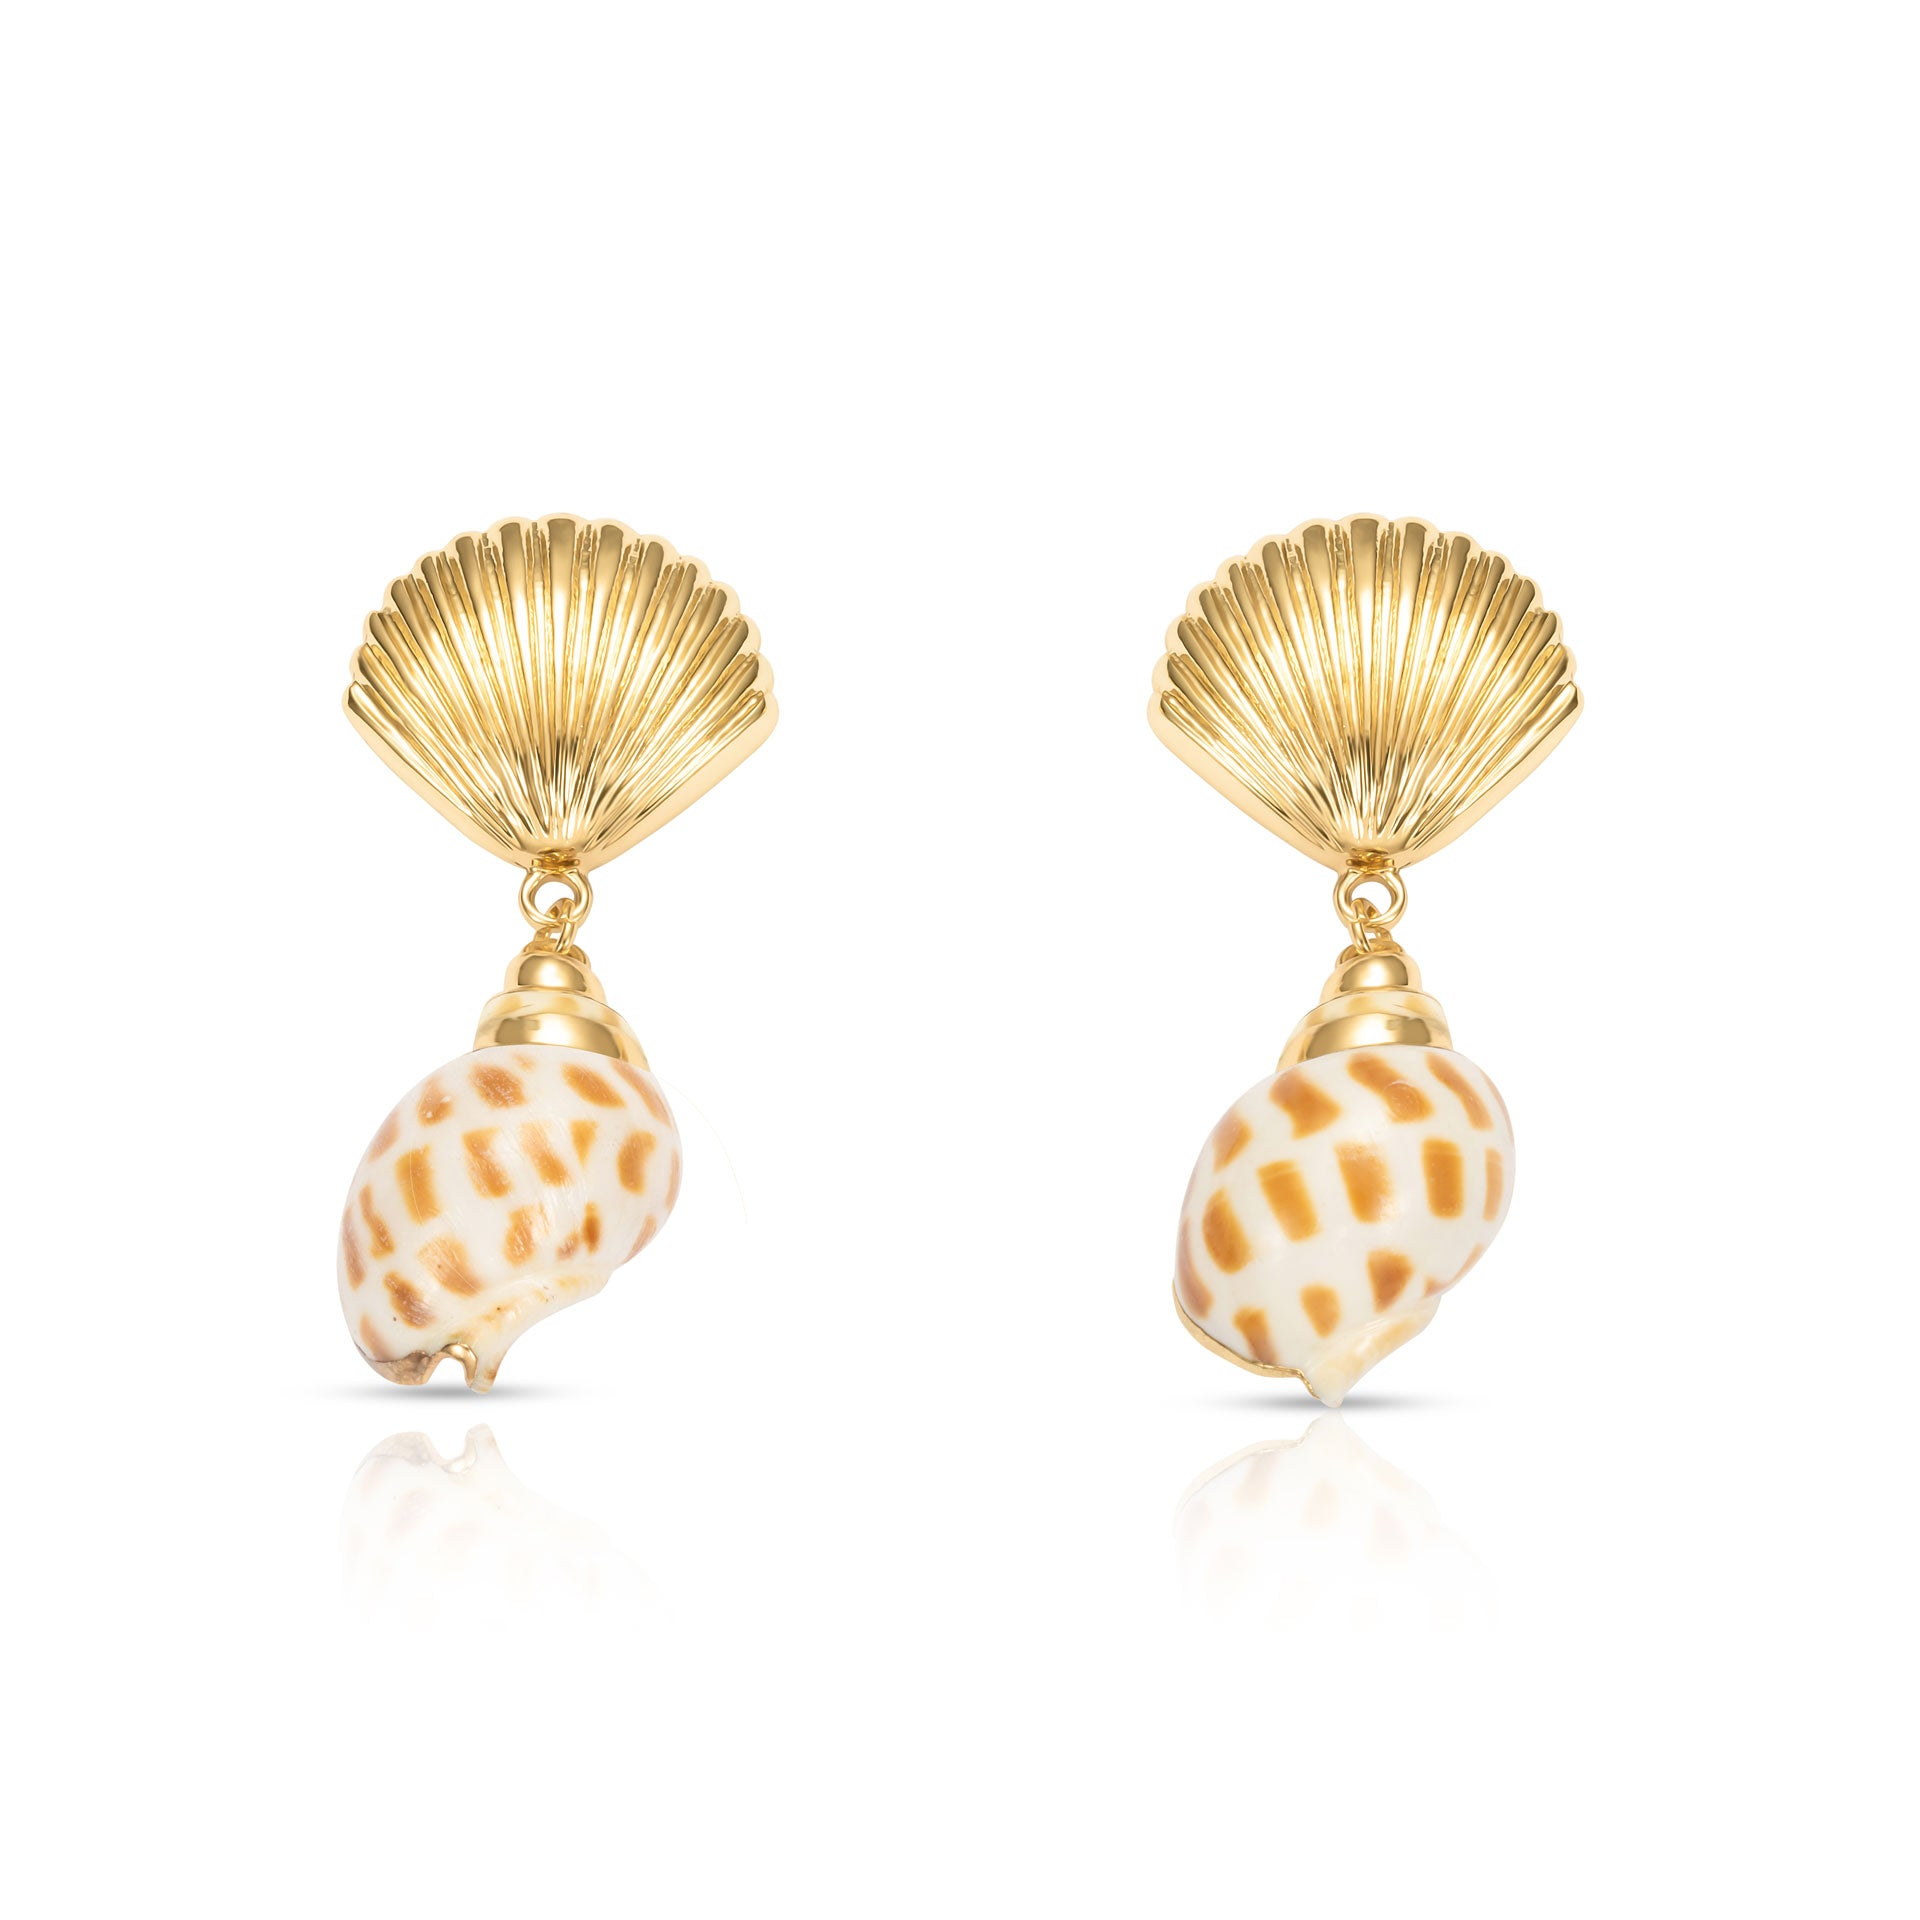 THE GENEVA EARRINGS